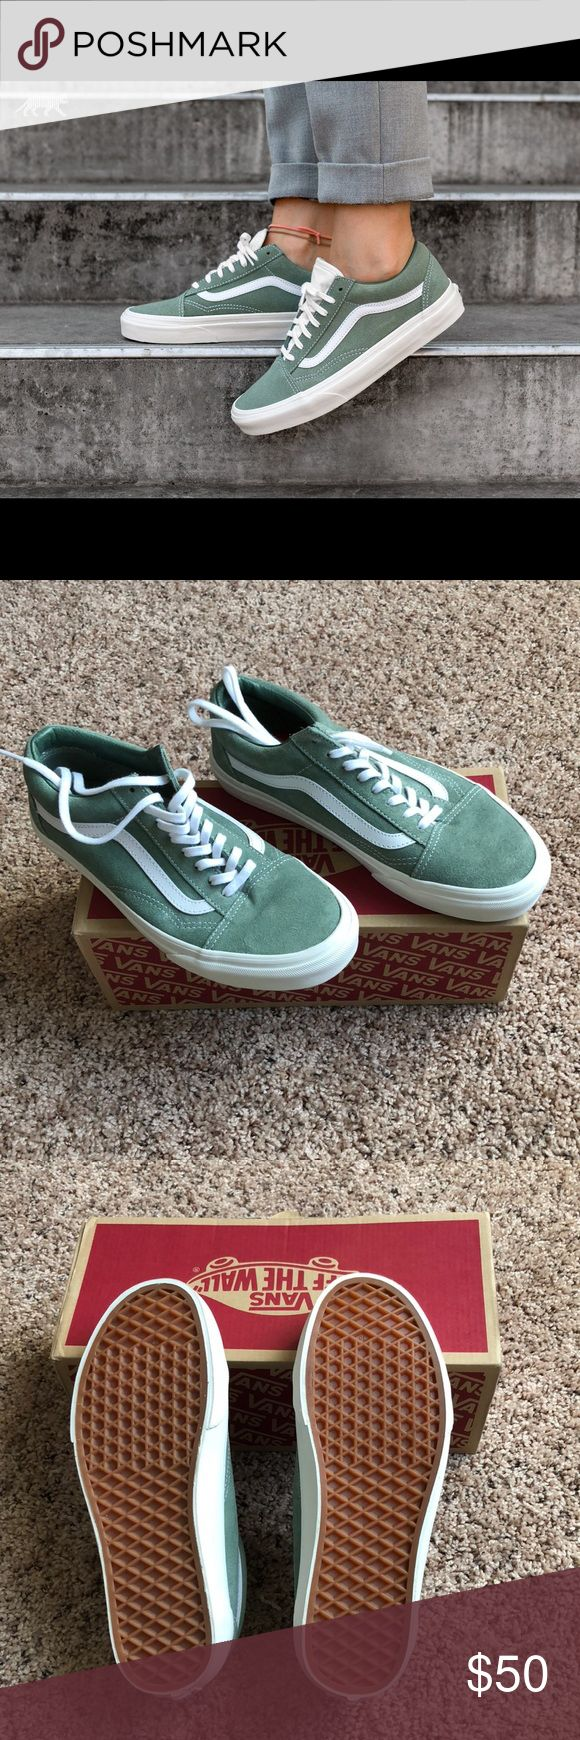 ⭐️SALE⭐️ Old Skool Vans NWT!!!! Bought online. I thought I was buying a size 7 women's....turns out they're a size 7 men's, size 8.5 women's. Never been worn, comes with box. Great color! Vans Shoes Sneakers